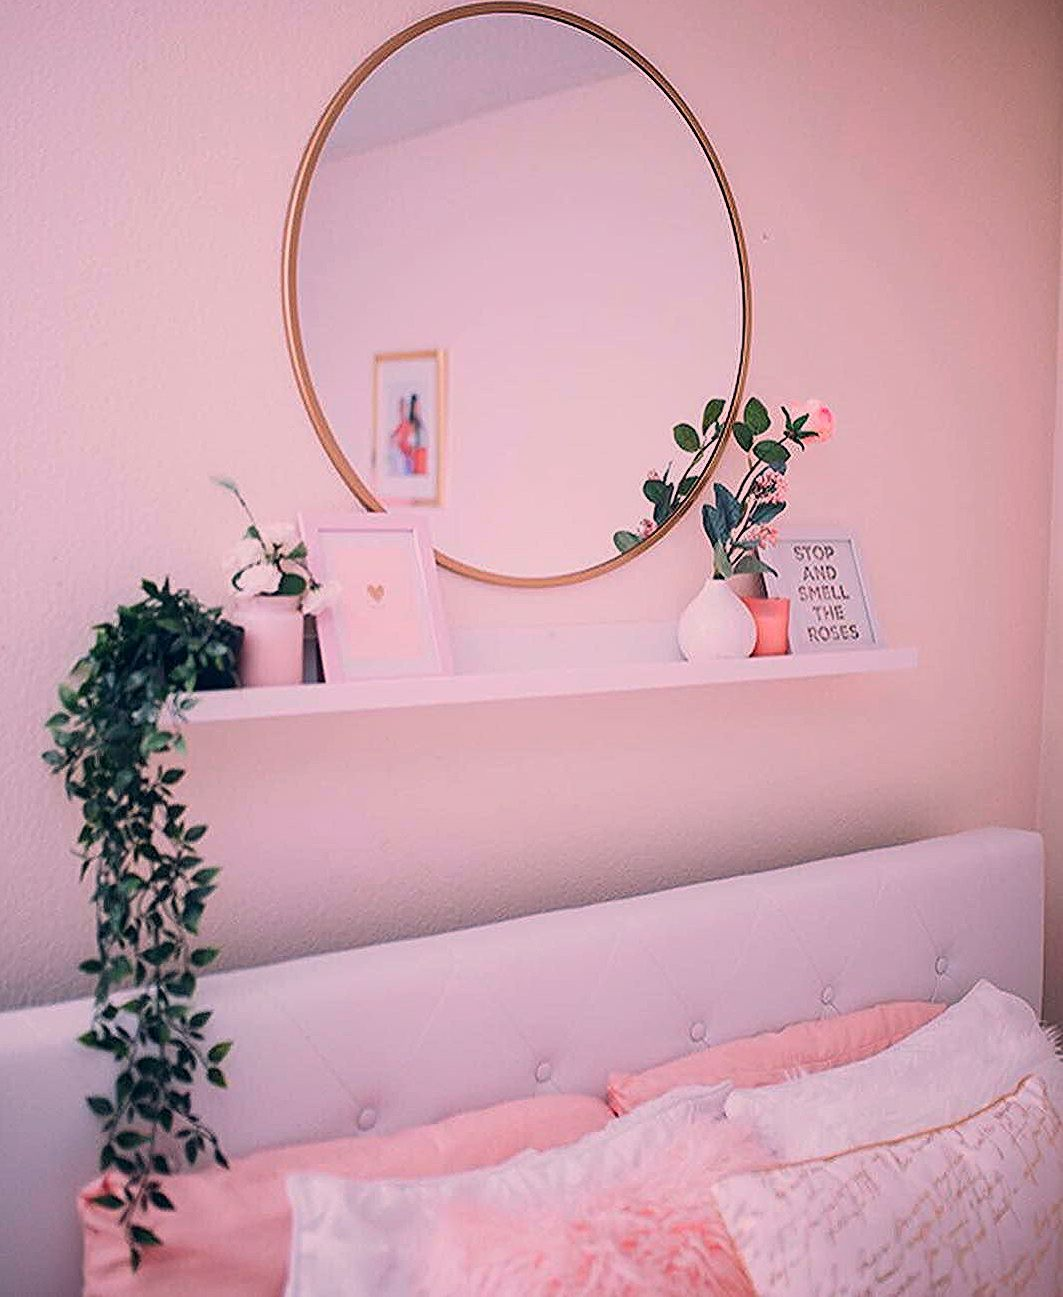 Small shelf and mirror above bed I like this a lot